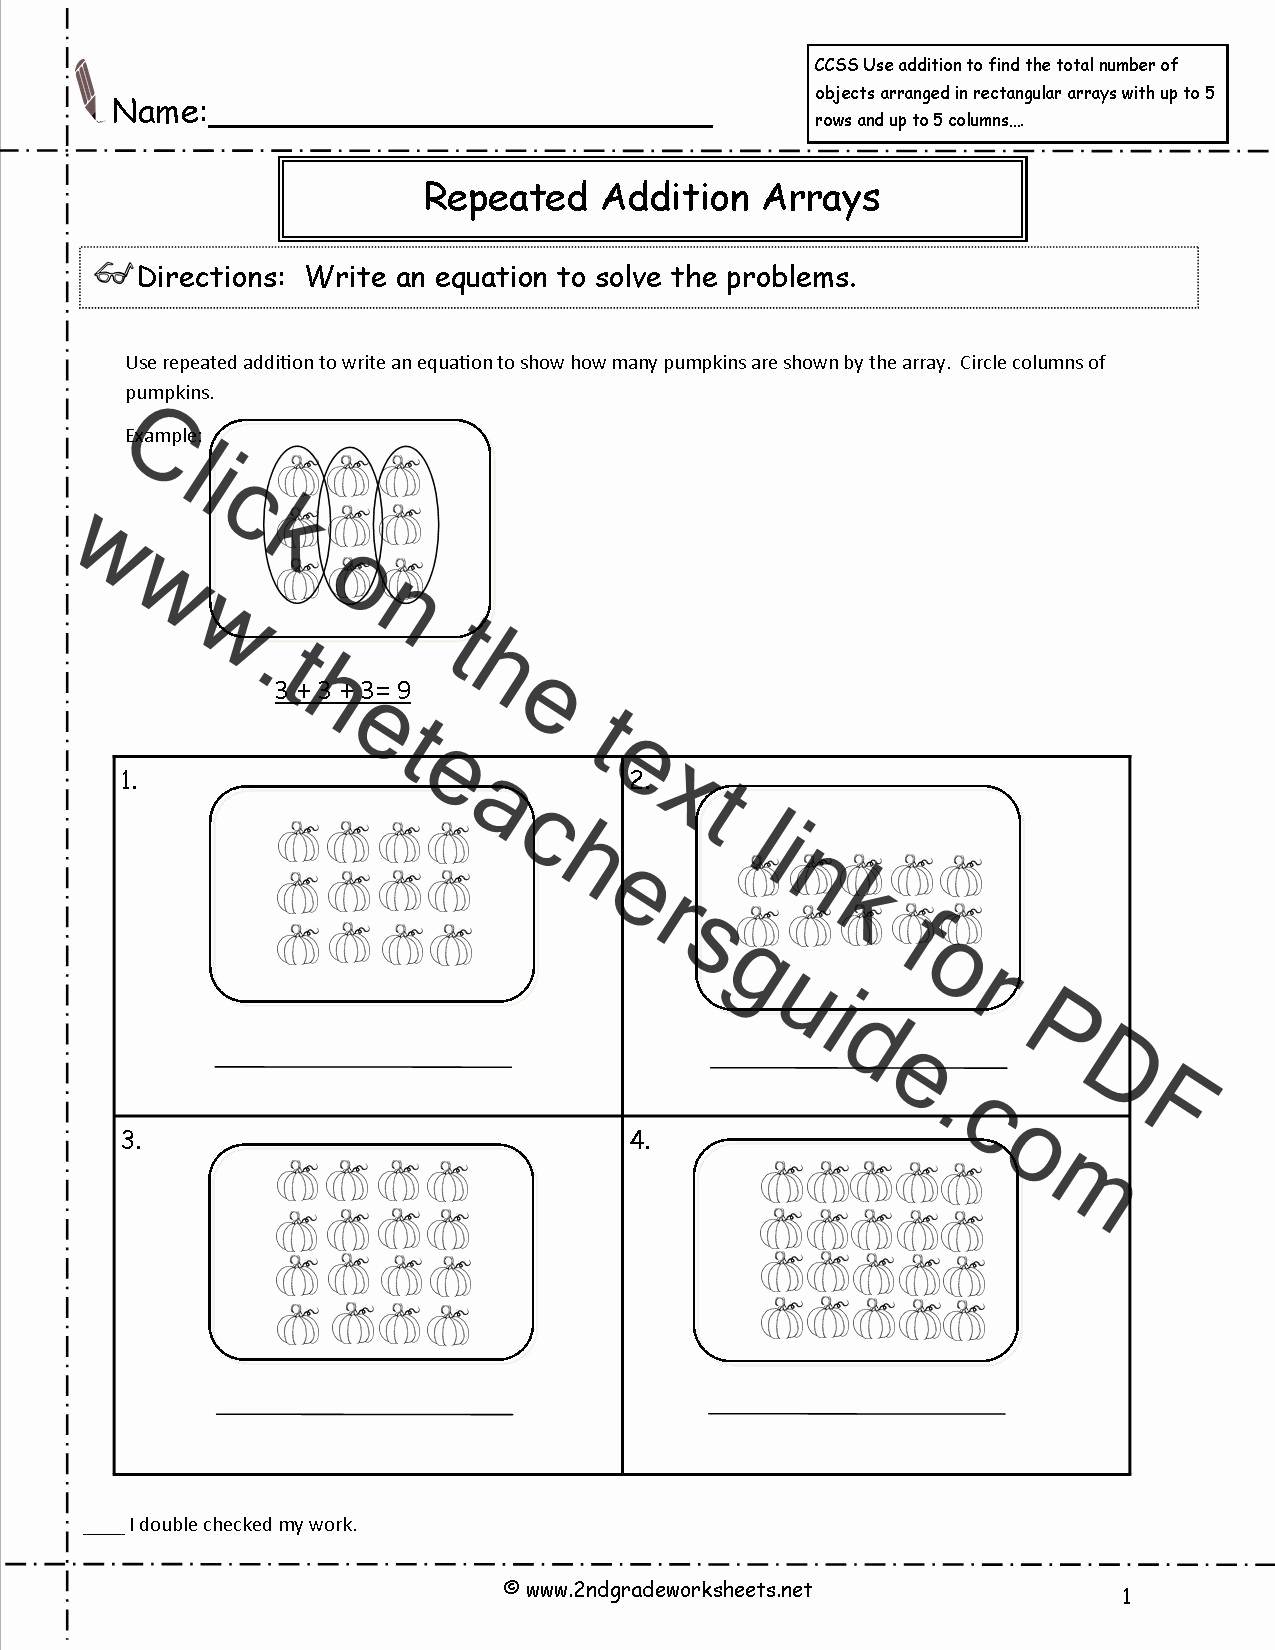 Repeated Addition Worksheets 2nd Grade Inspirational 17 Best Repeated Addition Worksheets 2nd Grade Images On